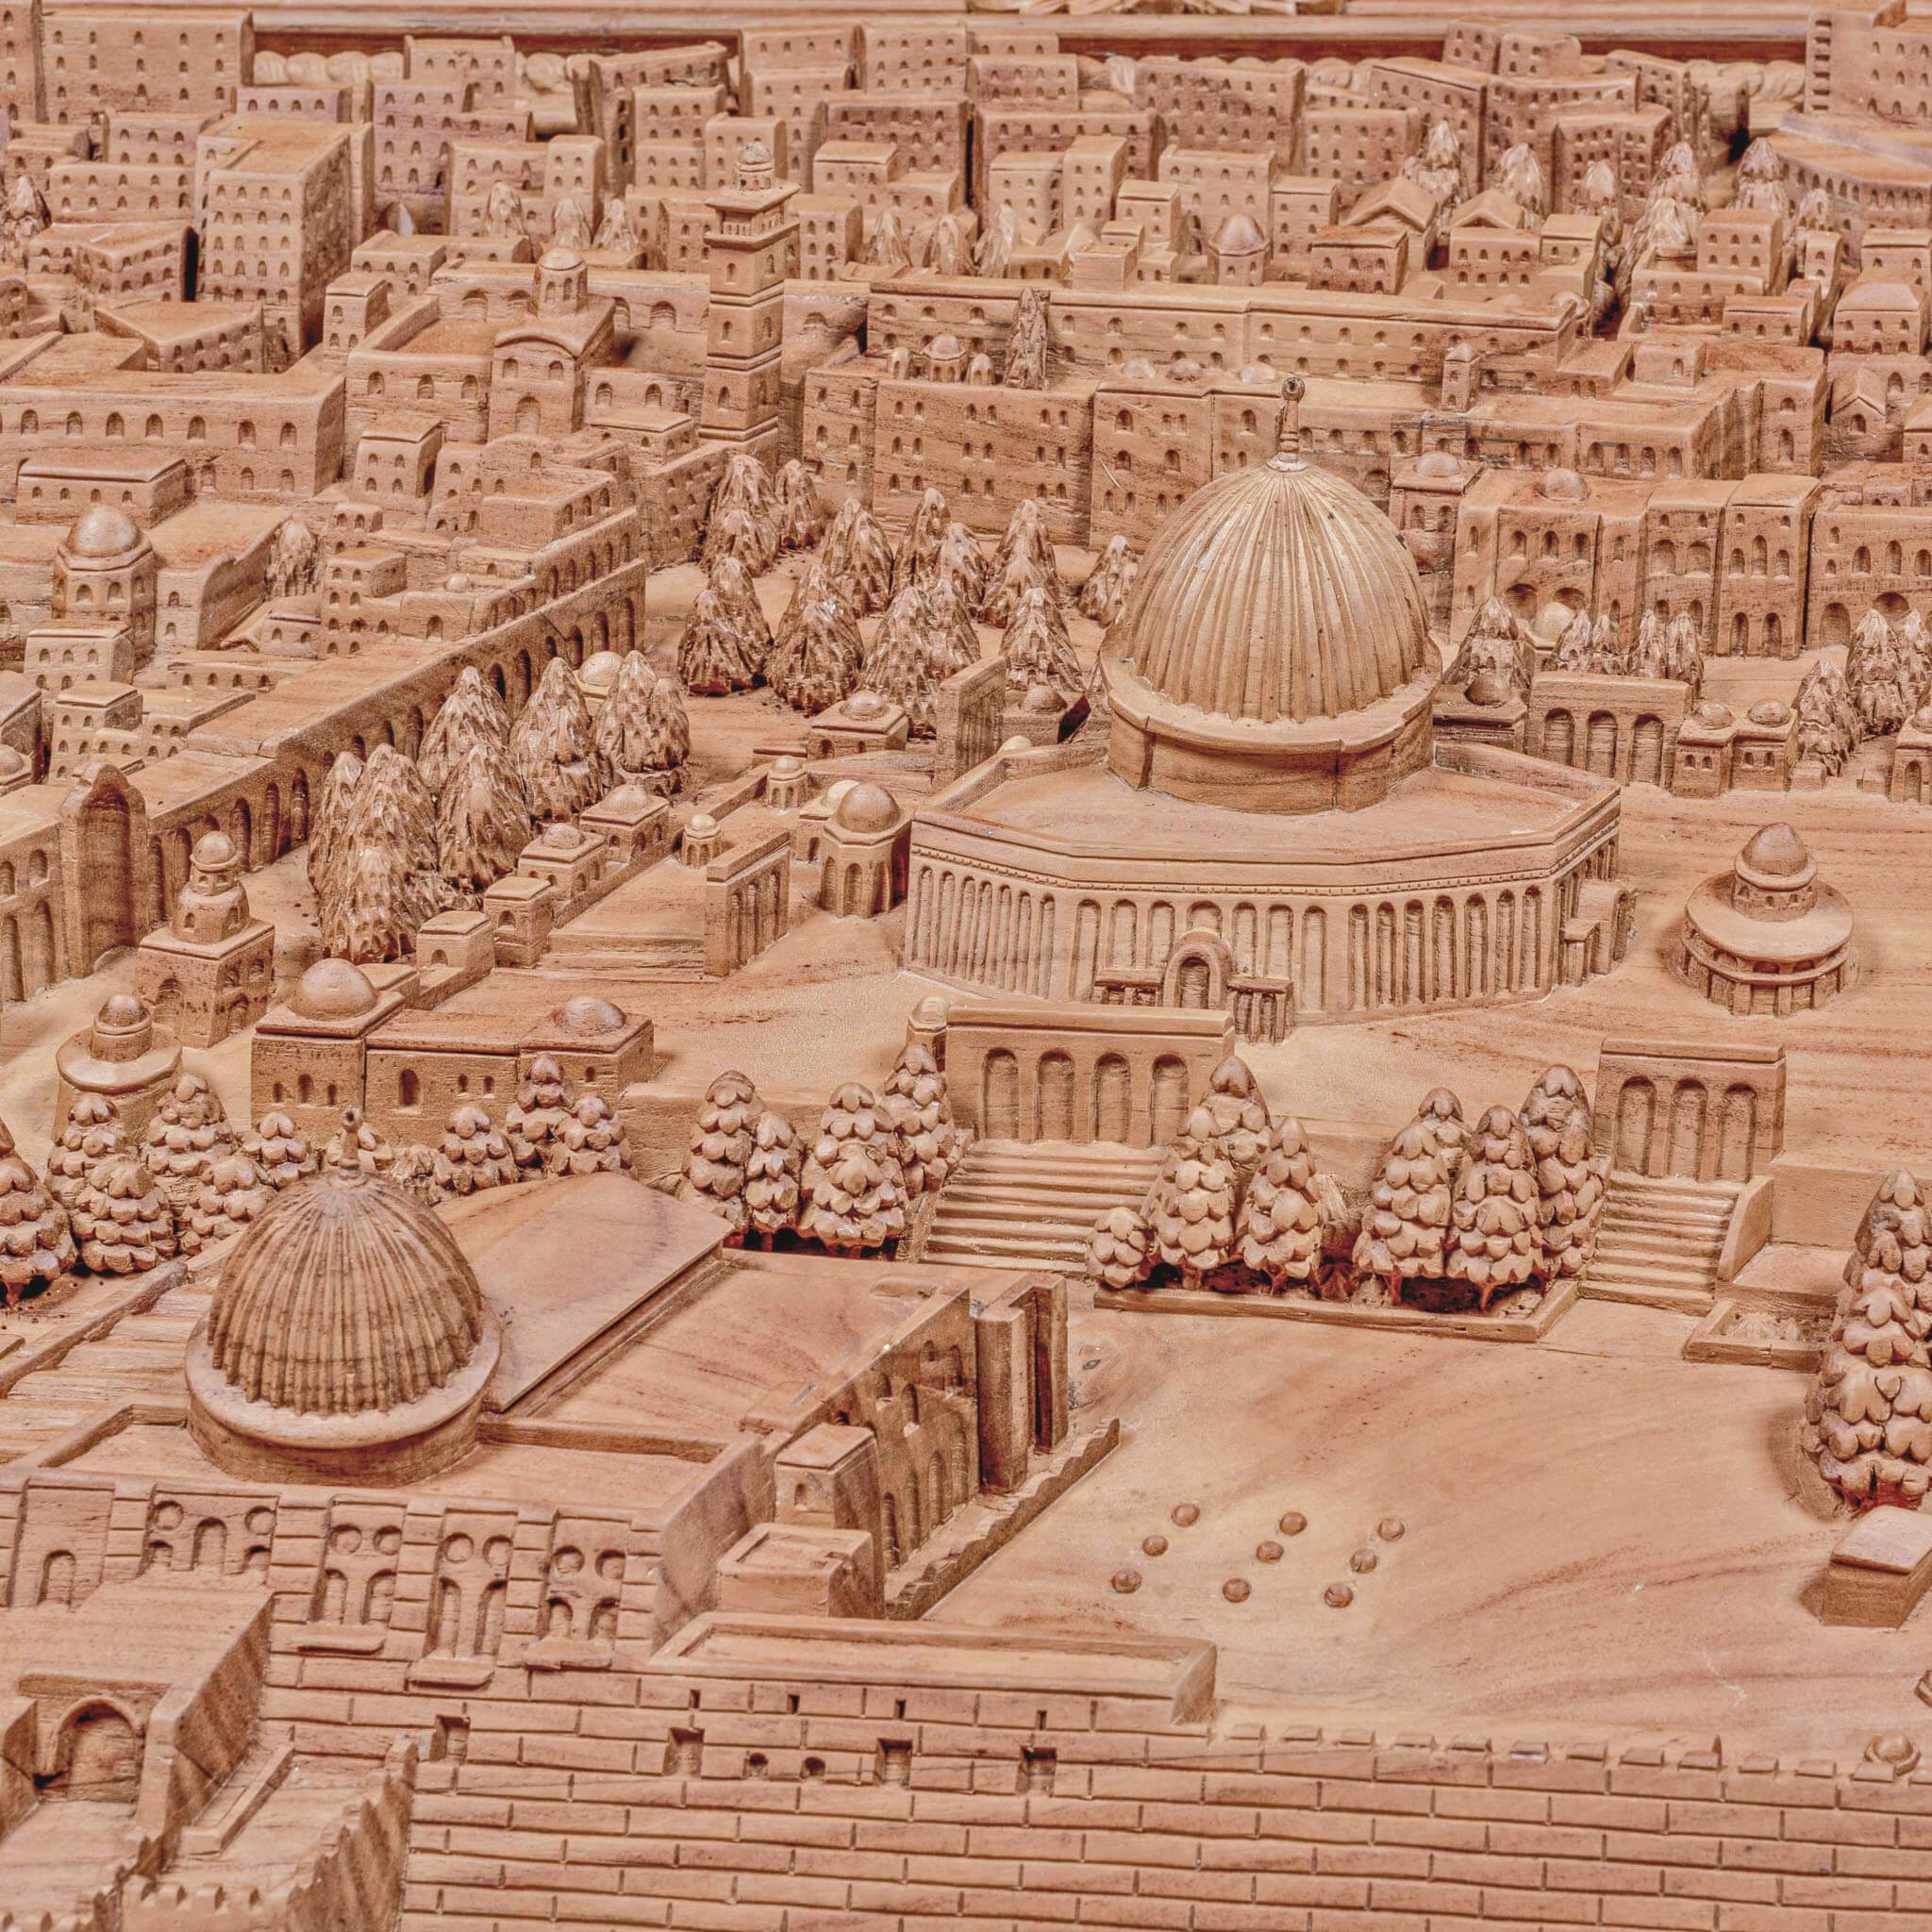 Al-Aqsa - 3D Skyline - 120cm Length x 75cm Height - Mahajati